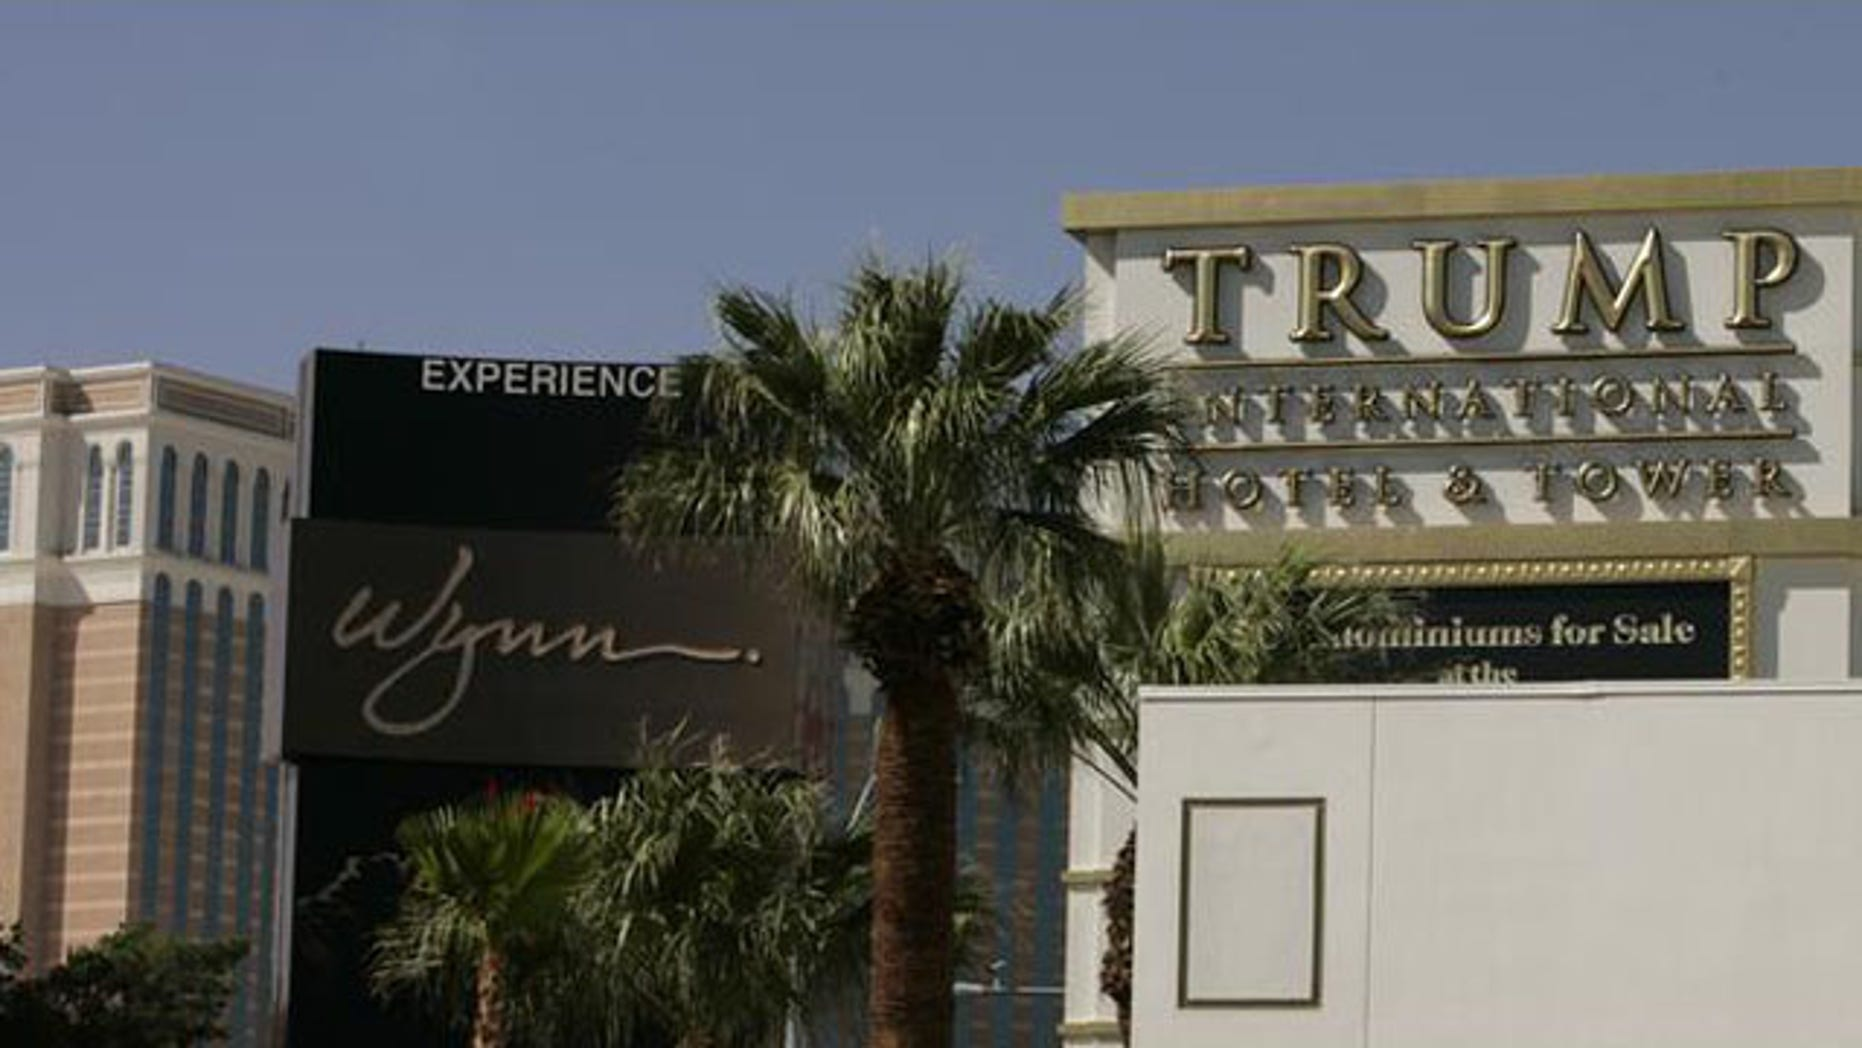 Shown here are the Venetian Hotel, Wynn Las Vegas Resort and a sign advertising the Trump International Hotel and Tower in Las Vegas. (AP Photo)